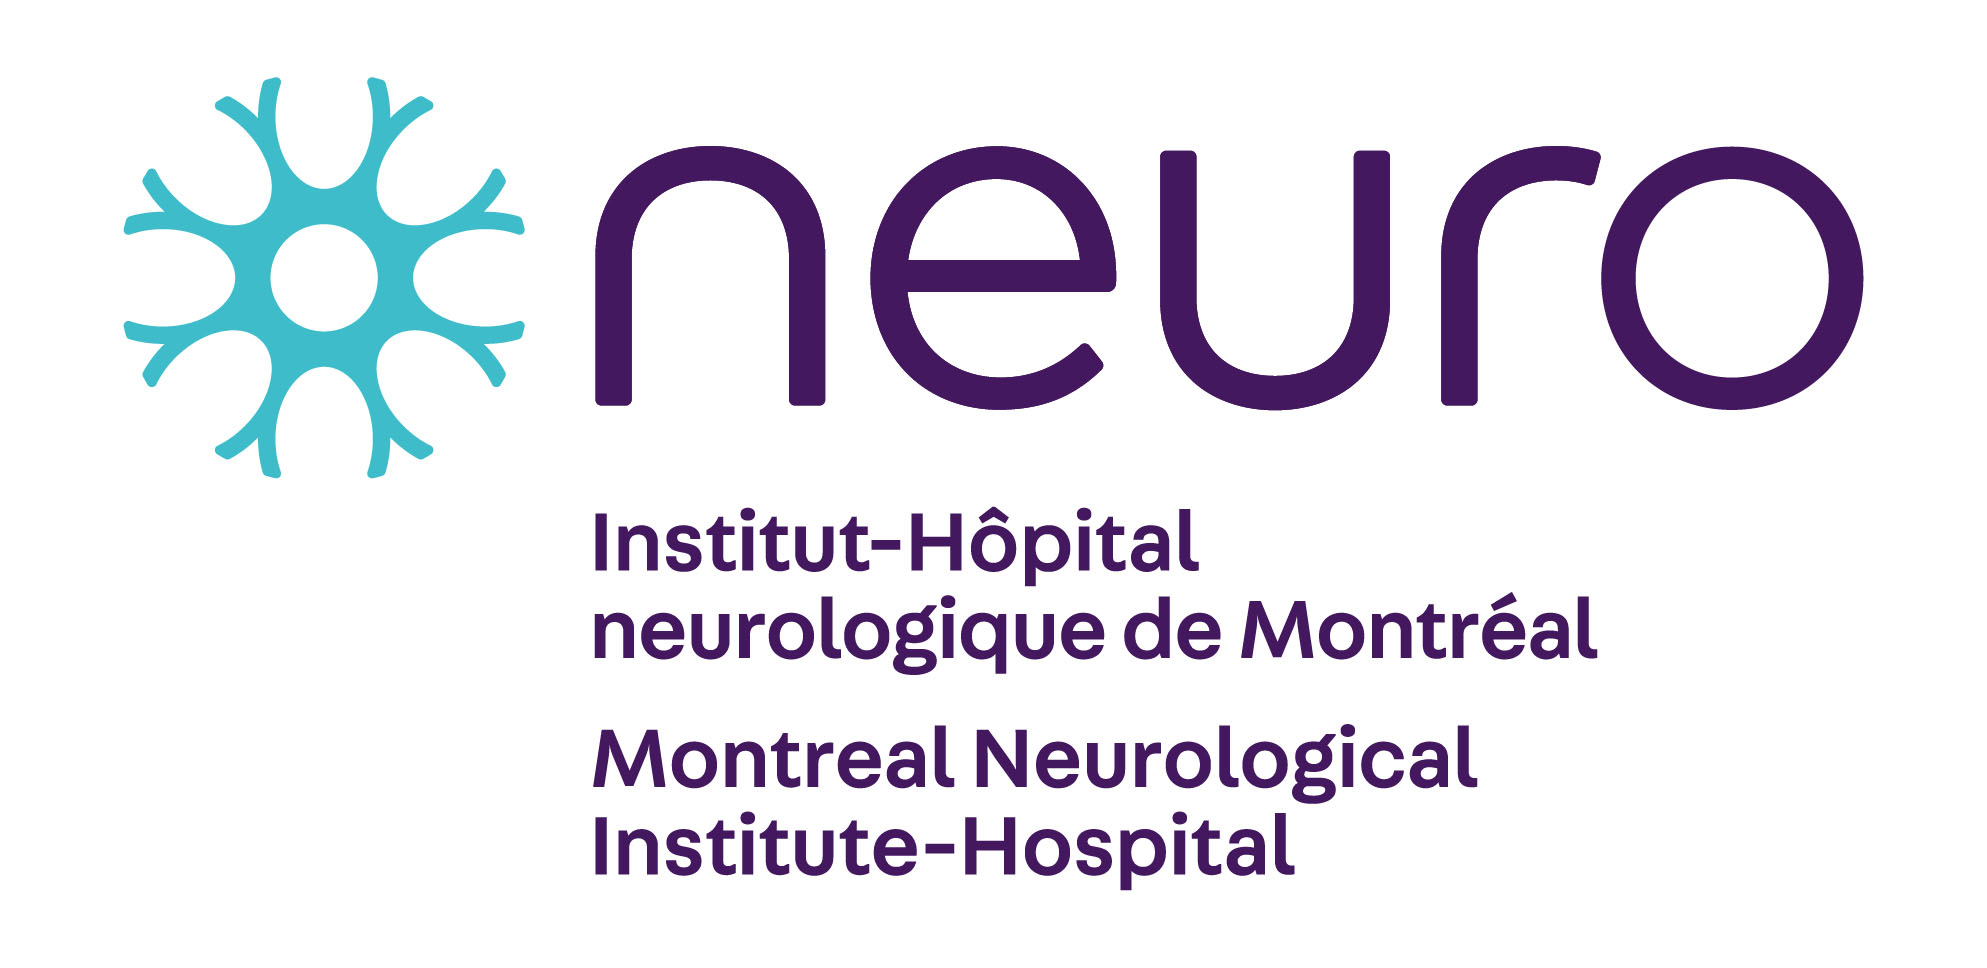 the Montreal Neurological Institute-Hospital logo